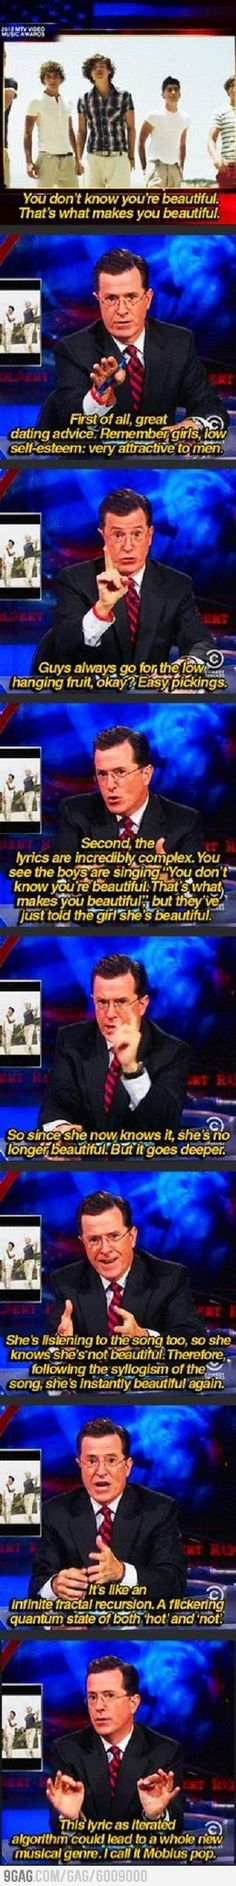 Thankyou Stephen Colbert. I have been struggling with this for sooo long!